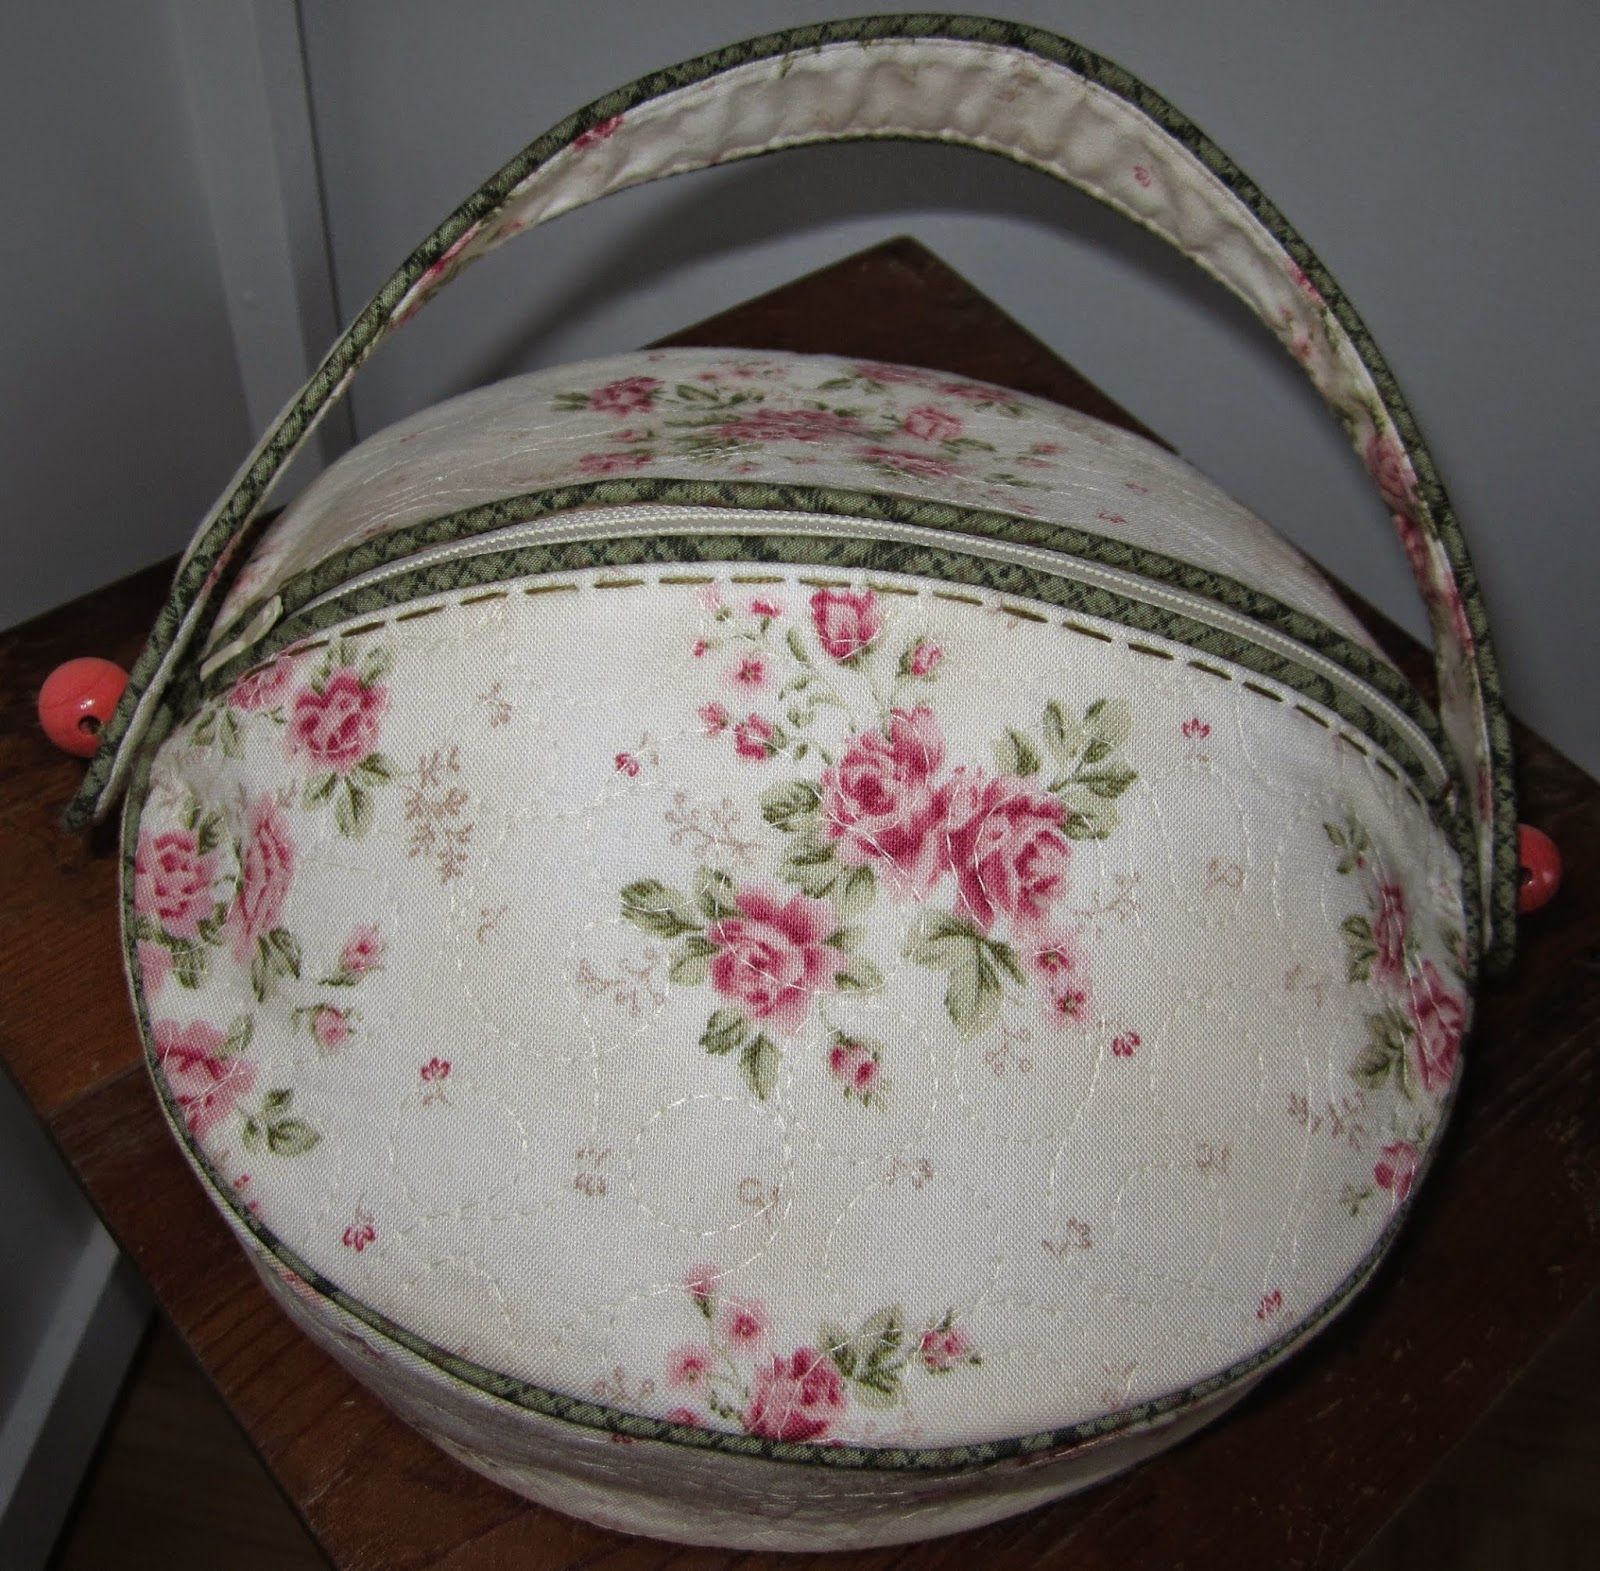 Really love this sewing bag!